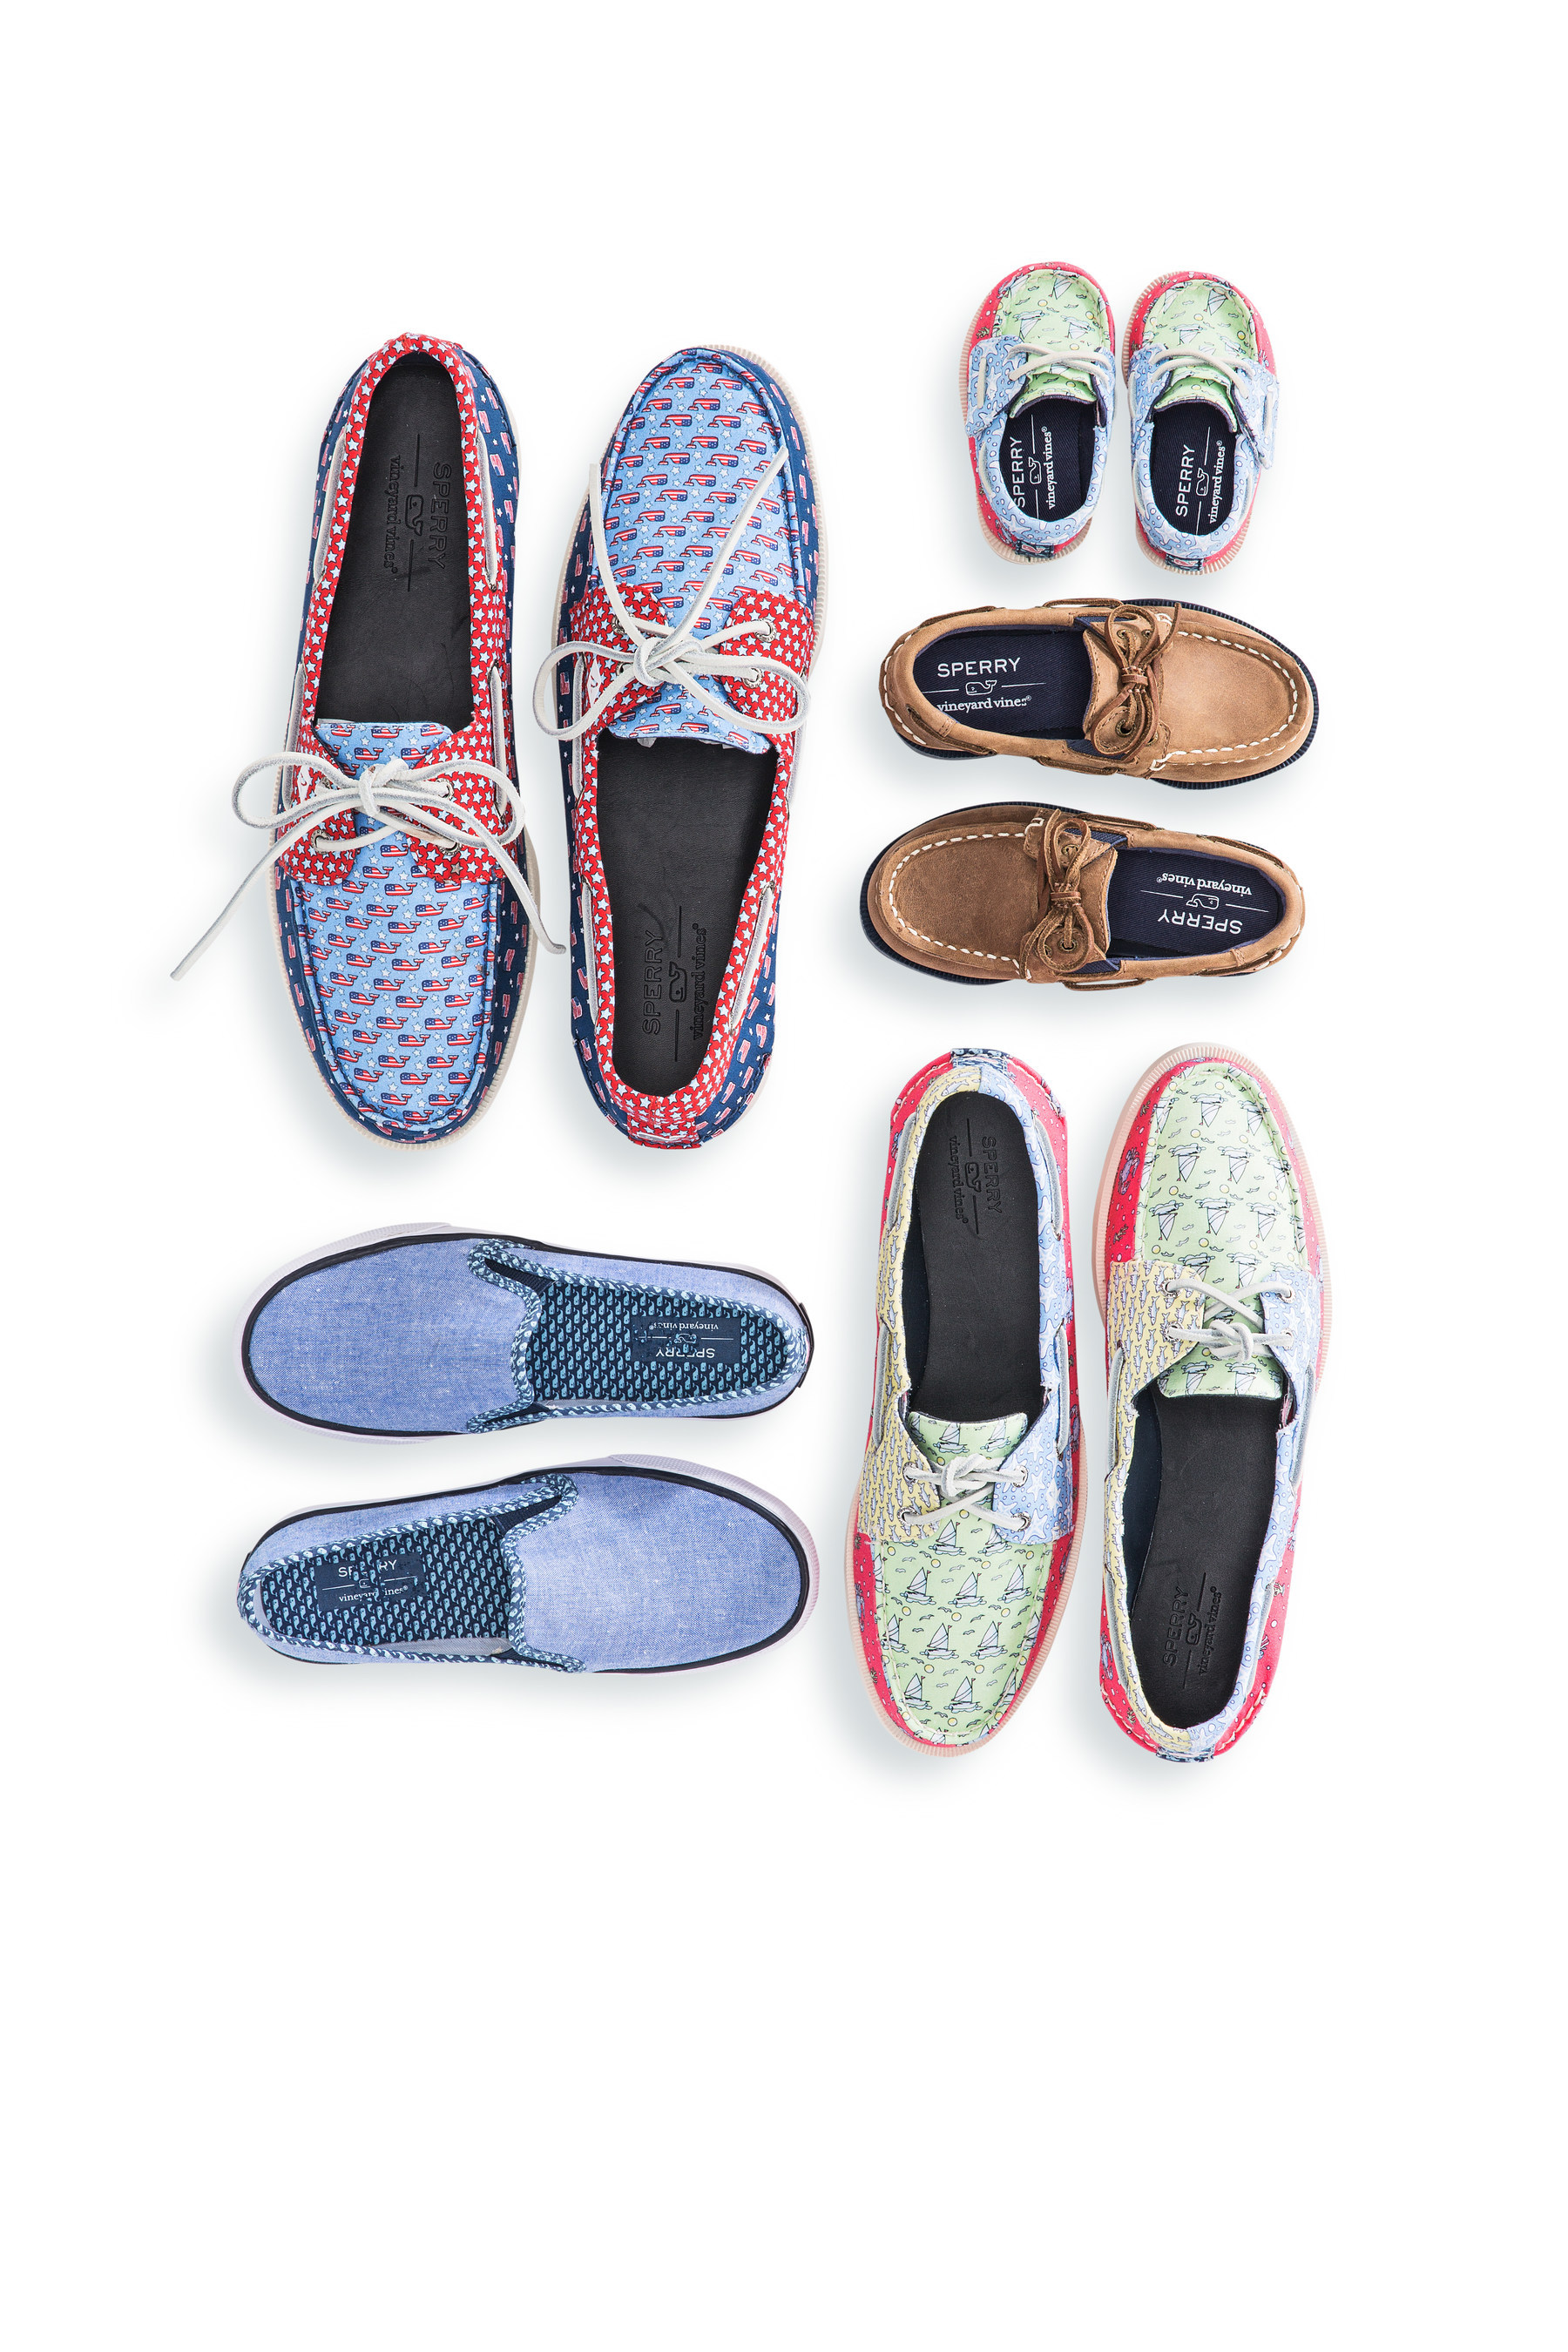 vineyard vines SPERRY PATCHWORK shoes